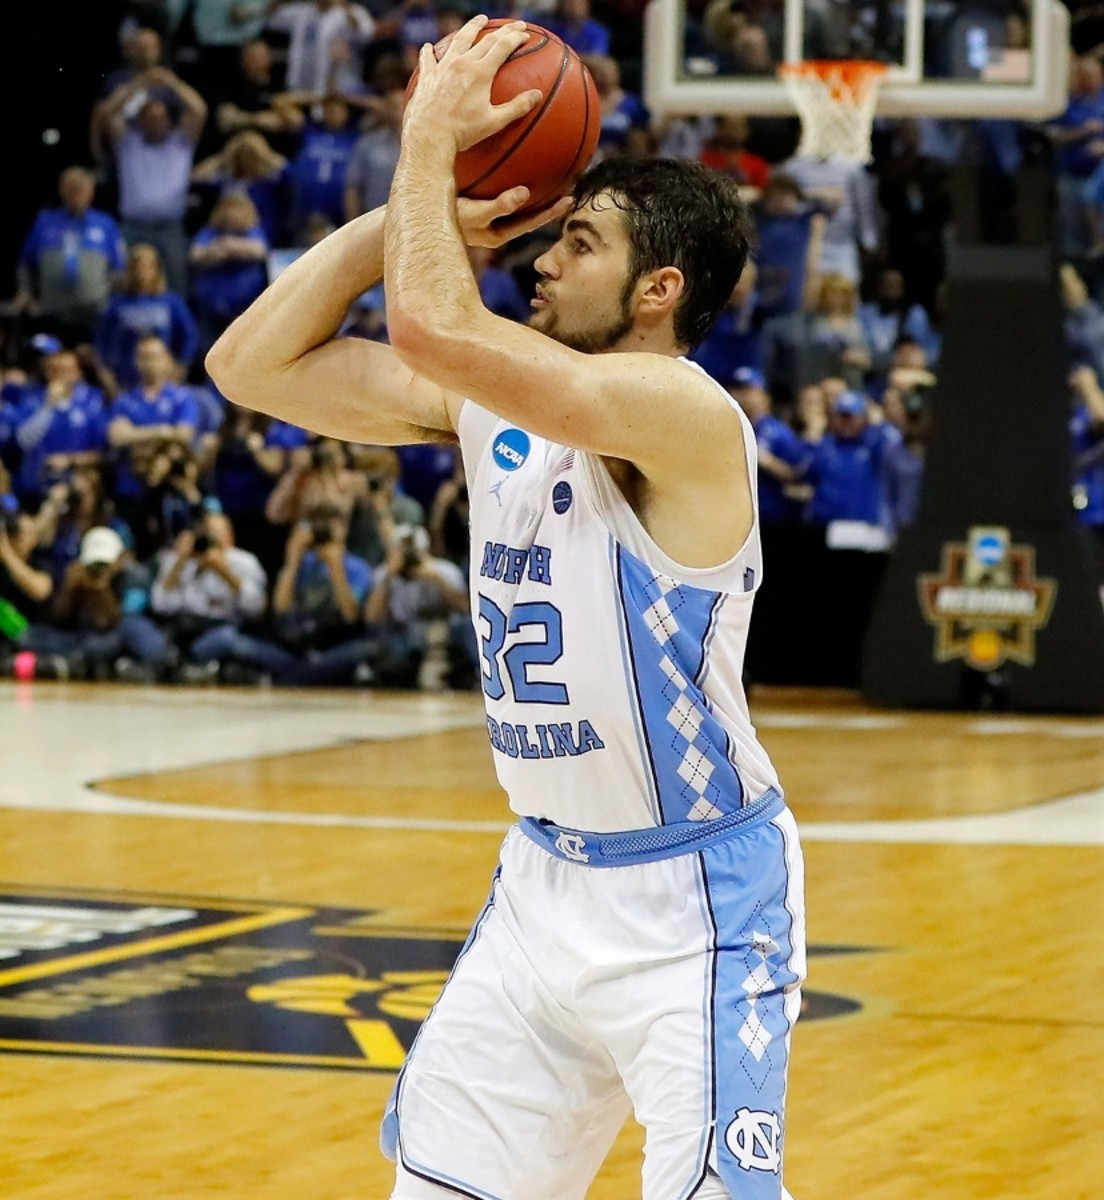 Please stop saying Luke Maye was a non-scholarship player; it's literally true, but more than a little misleading.  He was a 4 star recruit, not a walk-on.